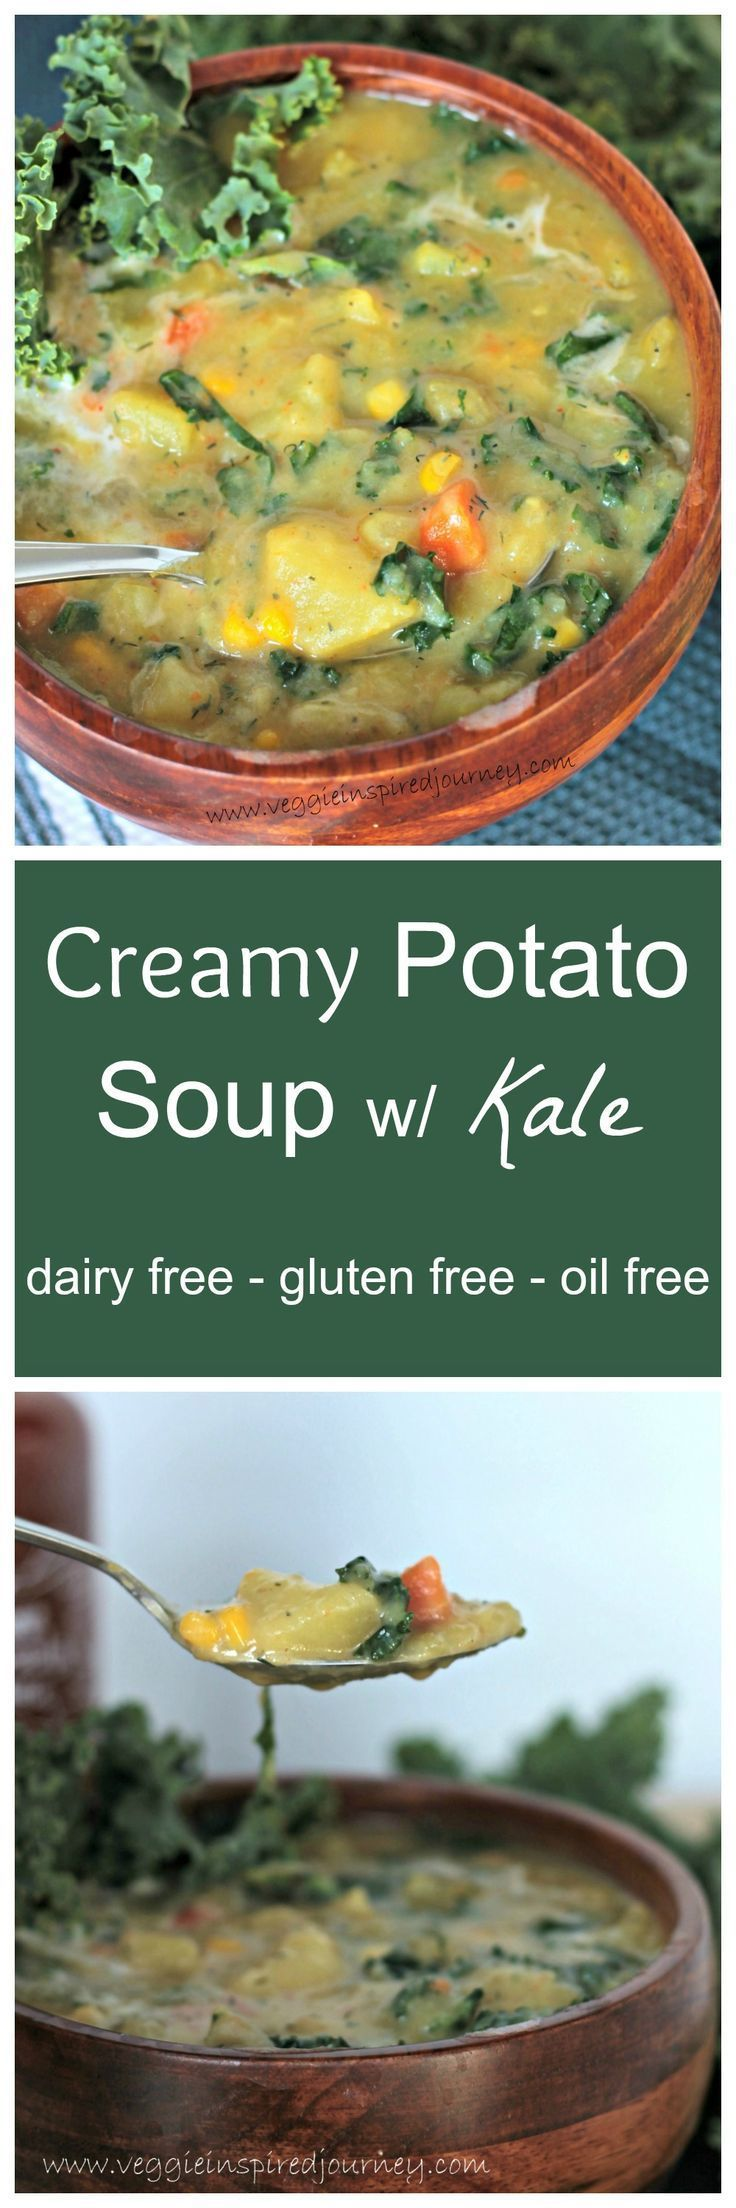 Creamy Dairy Free Potato Soup w/ Kale - so thick and delicious. Thickened only by pureeing some of the potatoes. This soup is gluten free and vegan!